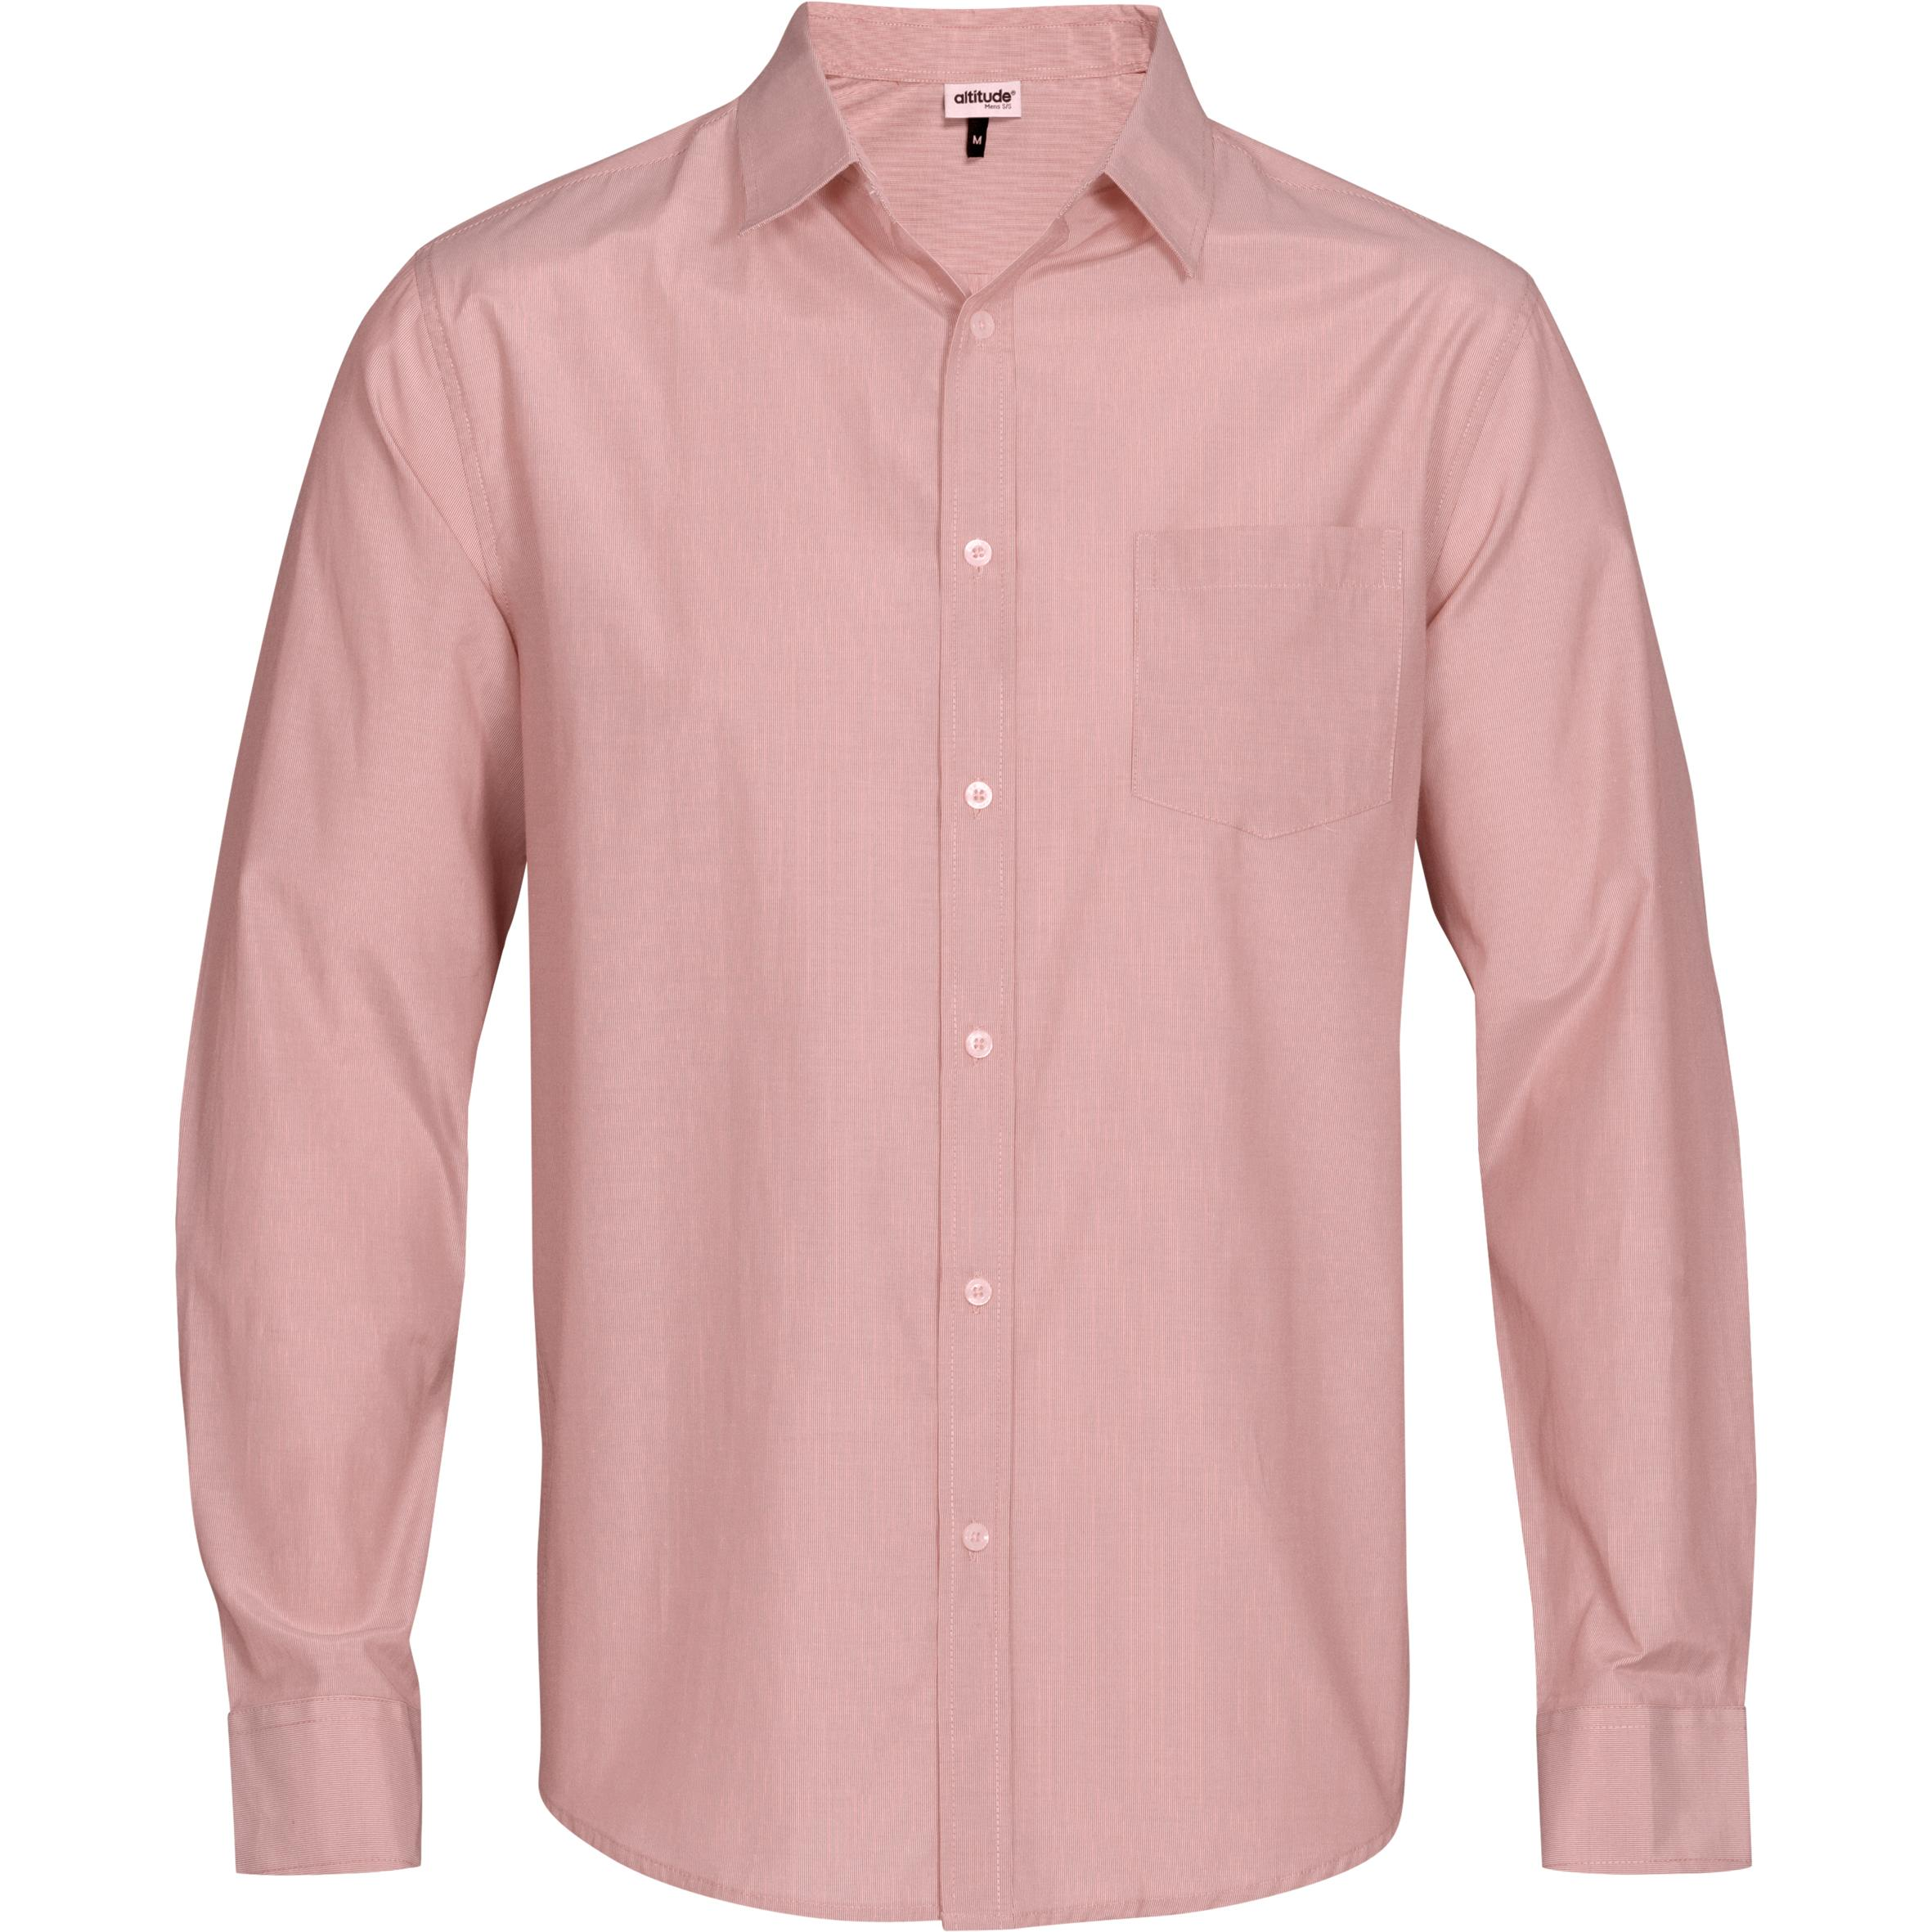 Mens Long Sleeve Portsmouth Shirt - Red Only